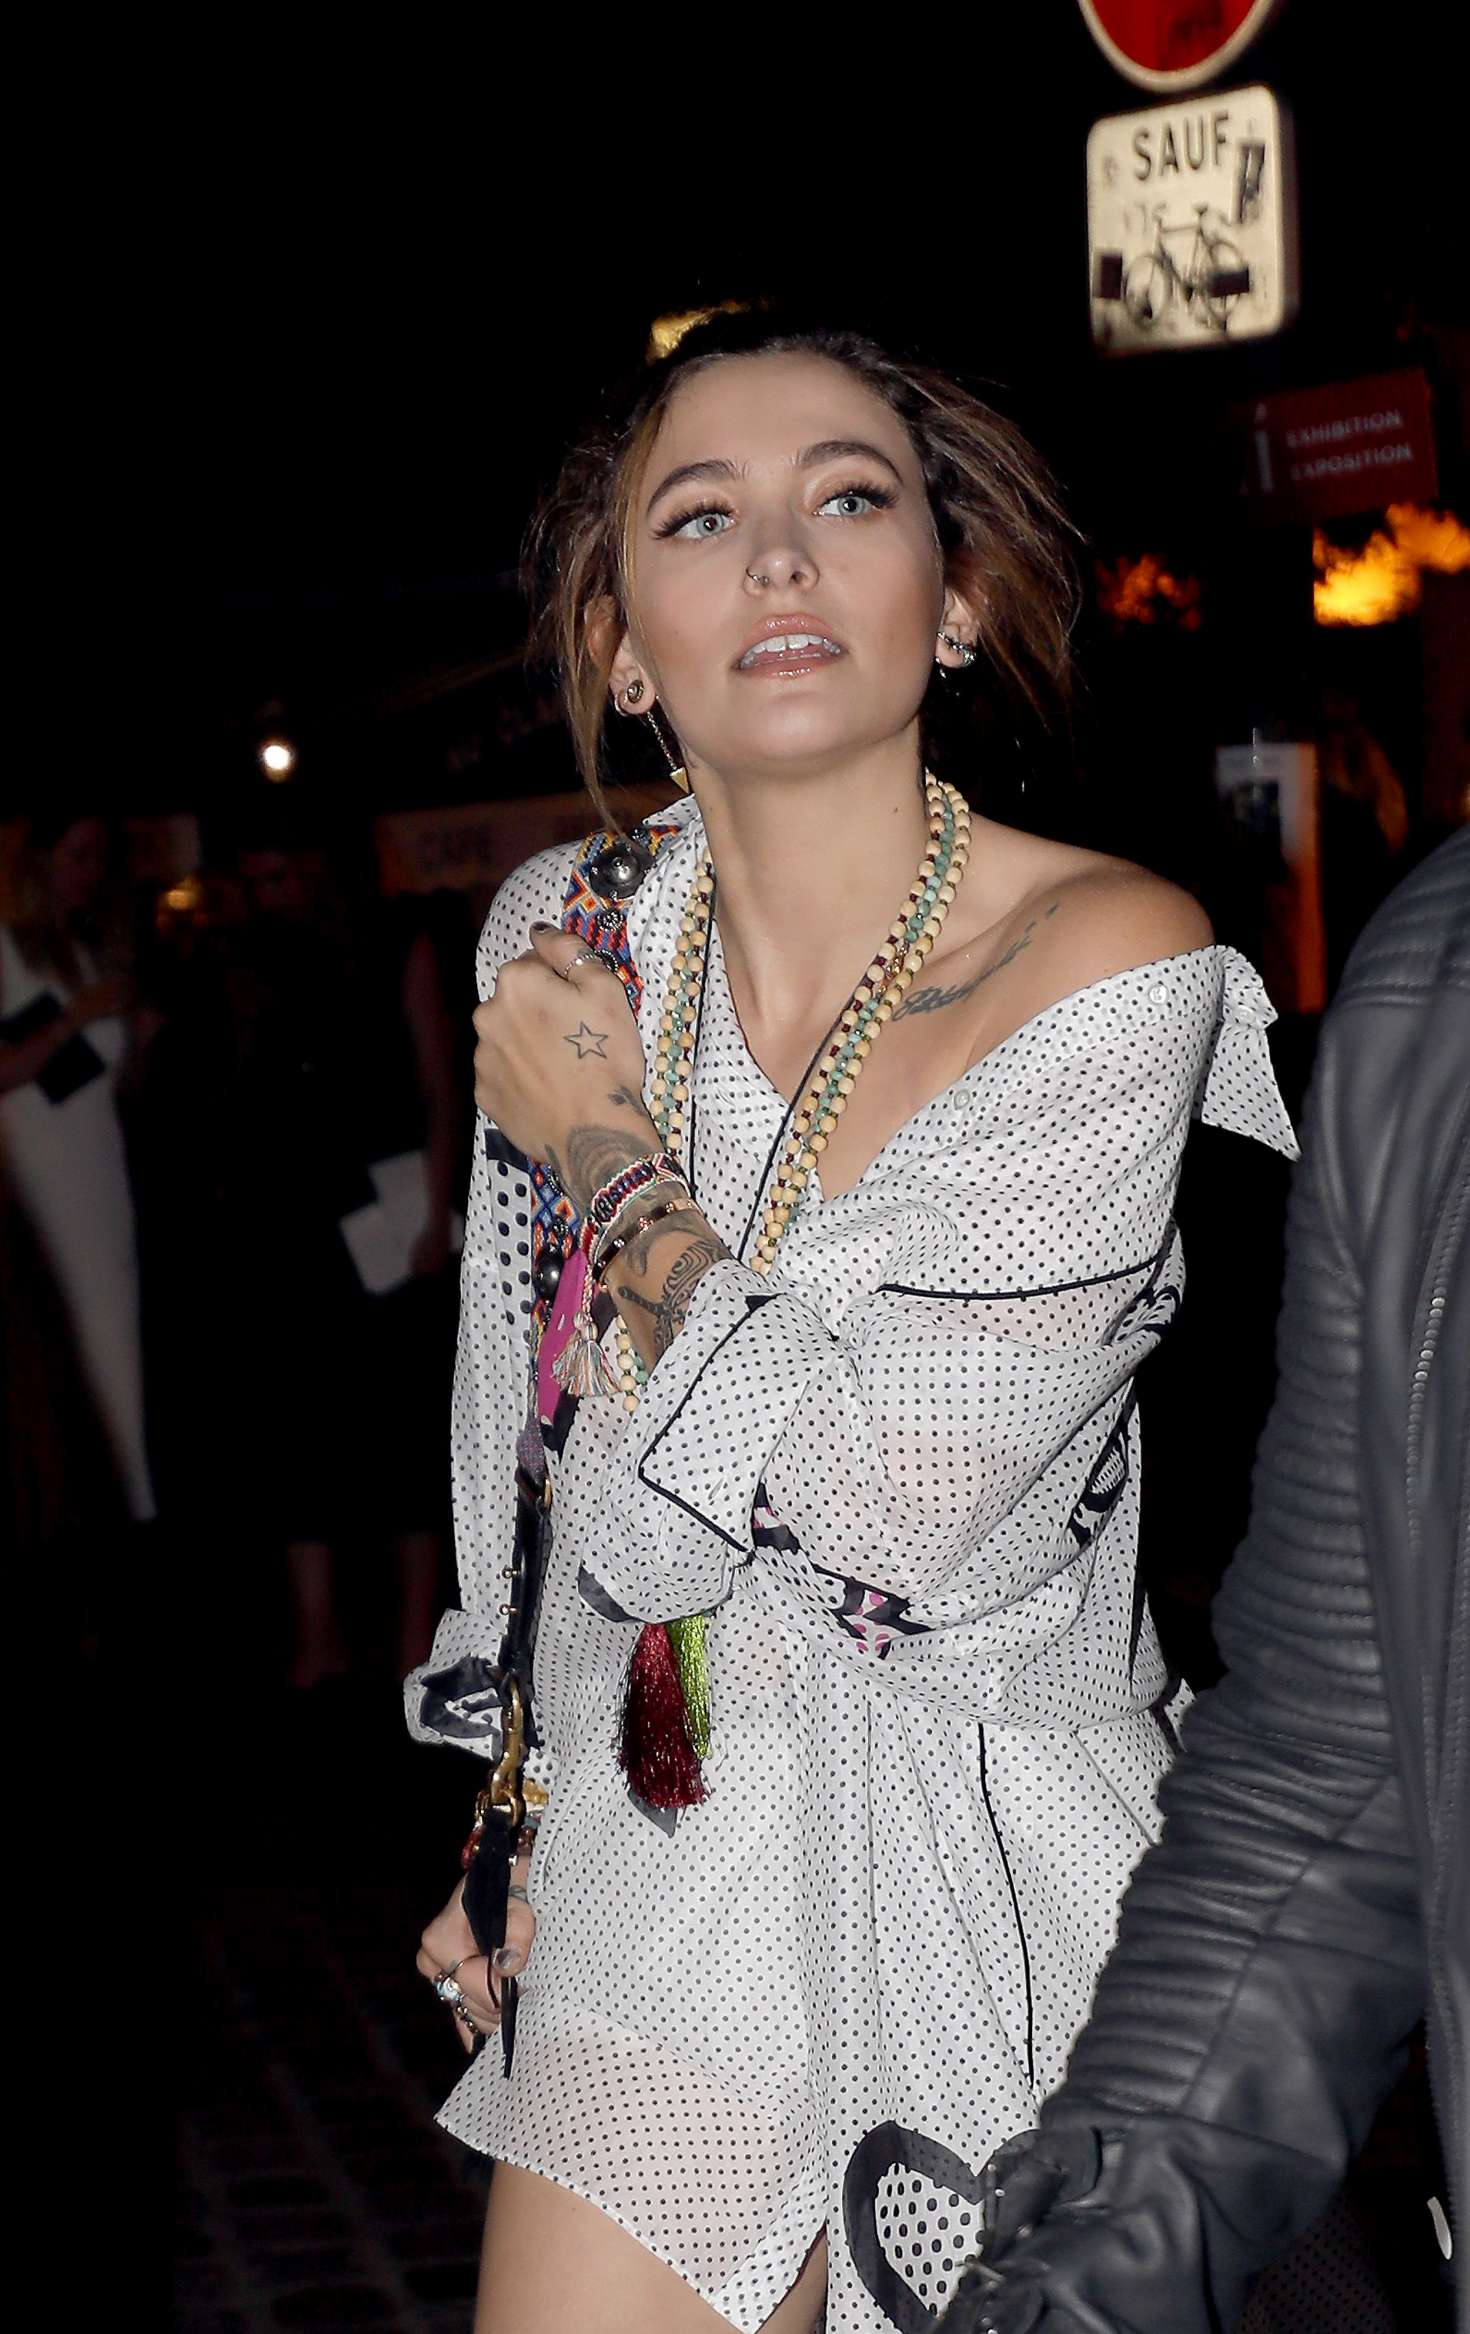 Paris Jackson – Attends at Christian Dior dinner in Paris